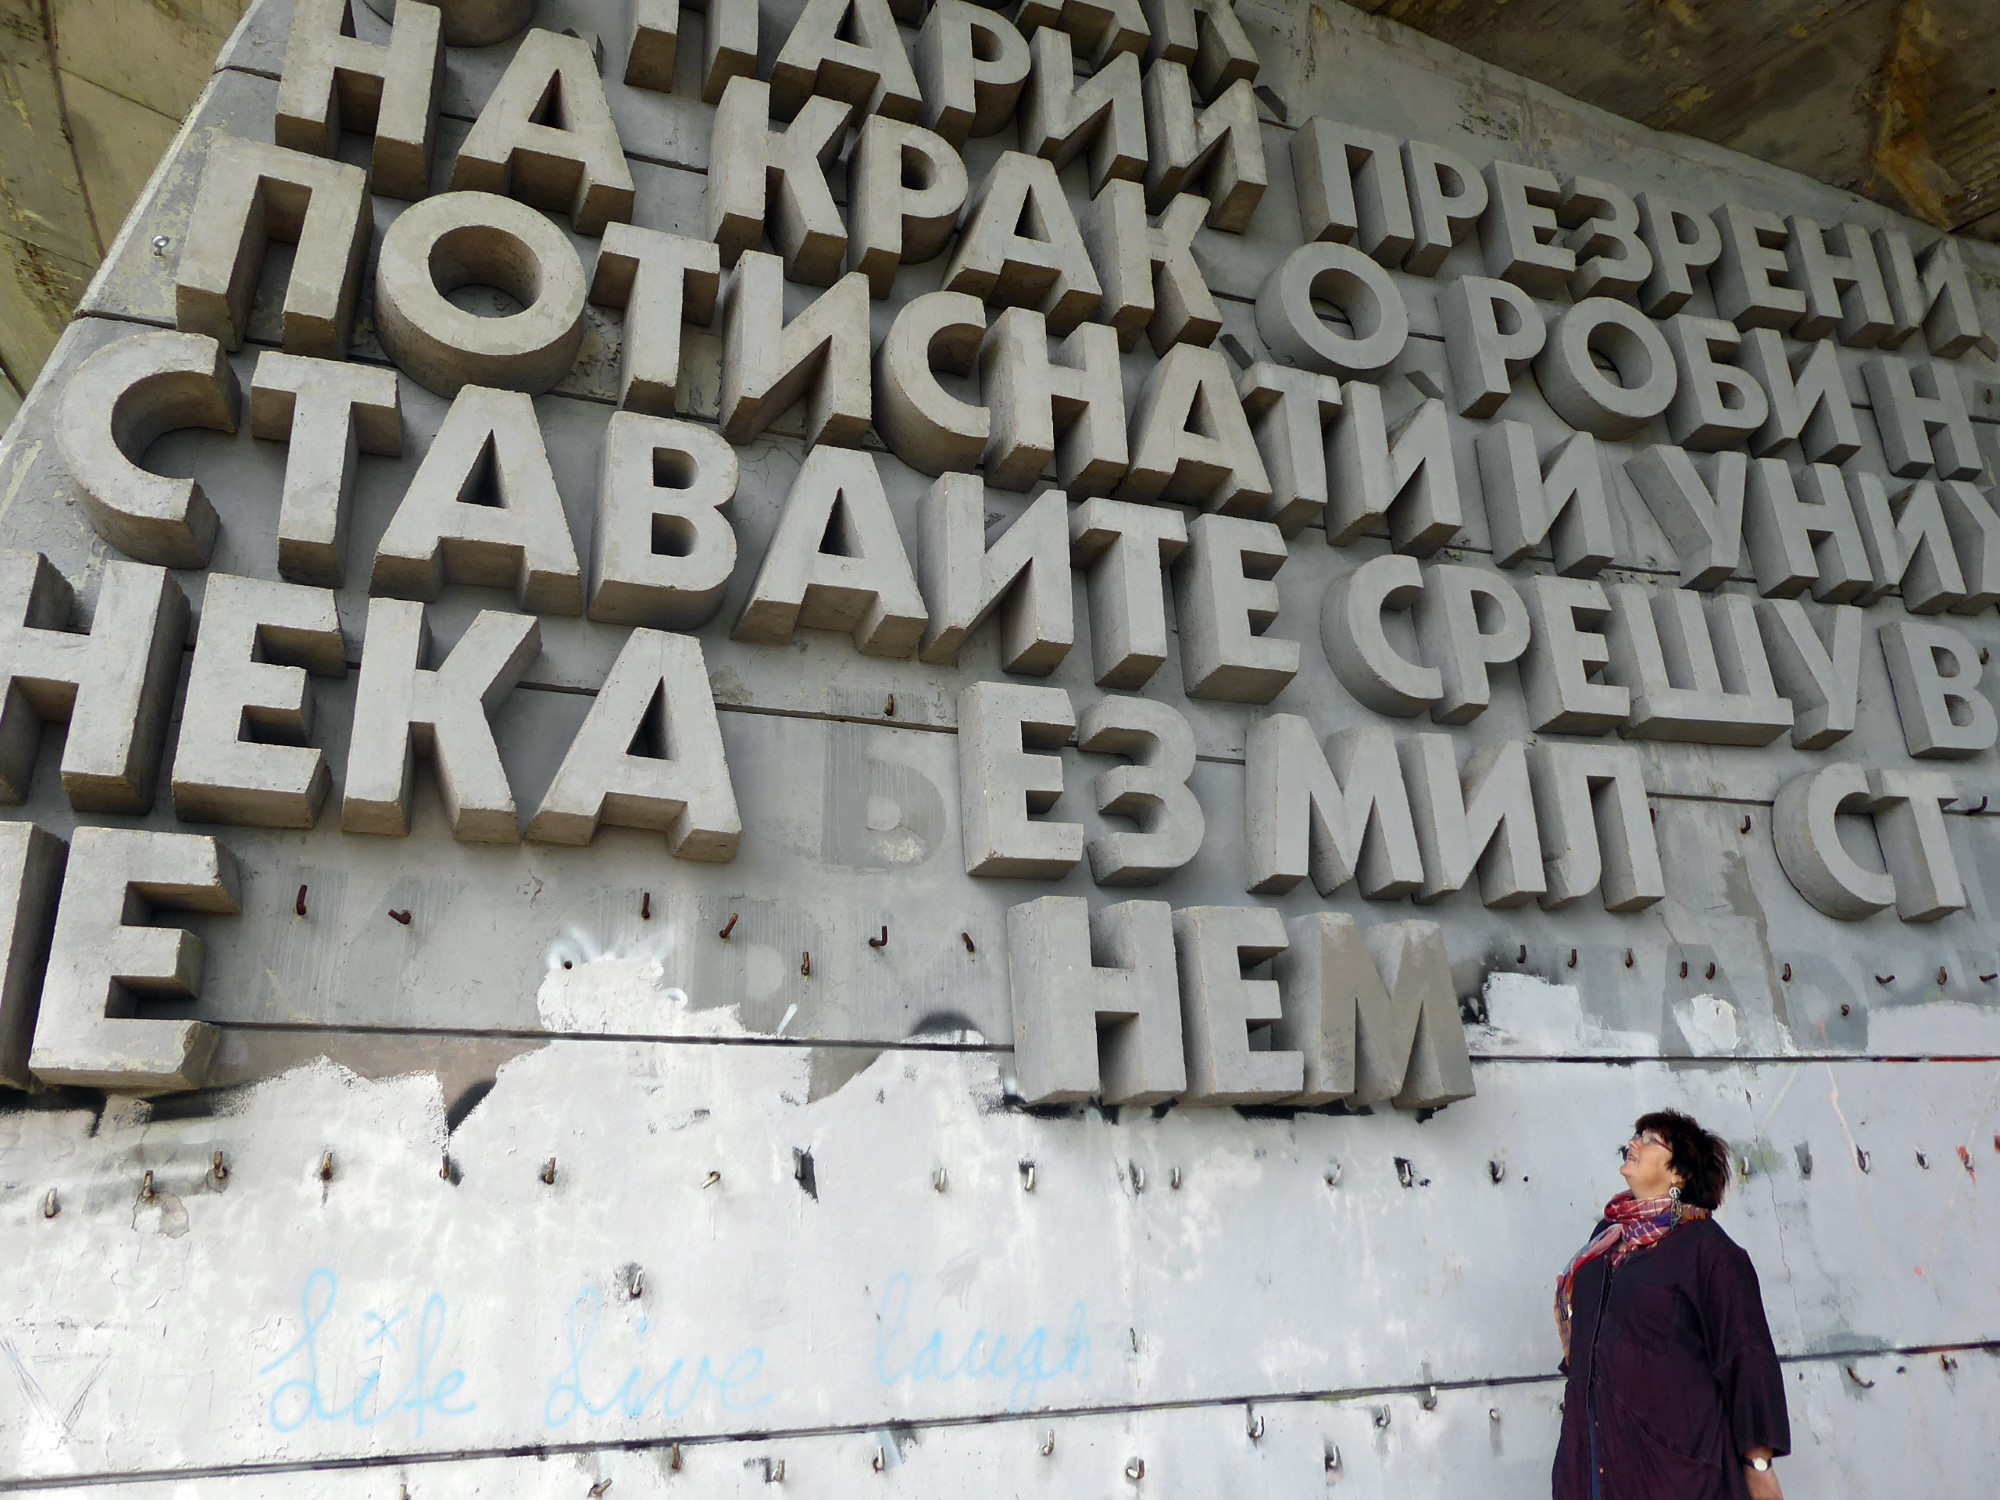 Lady looking at concrete lettering